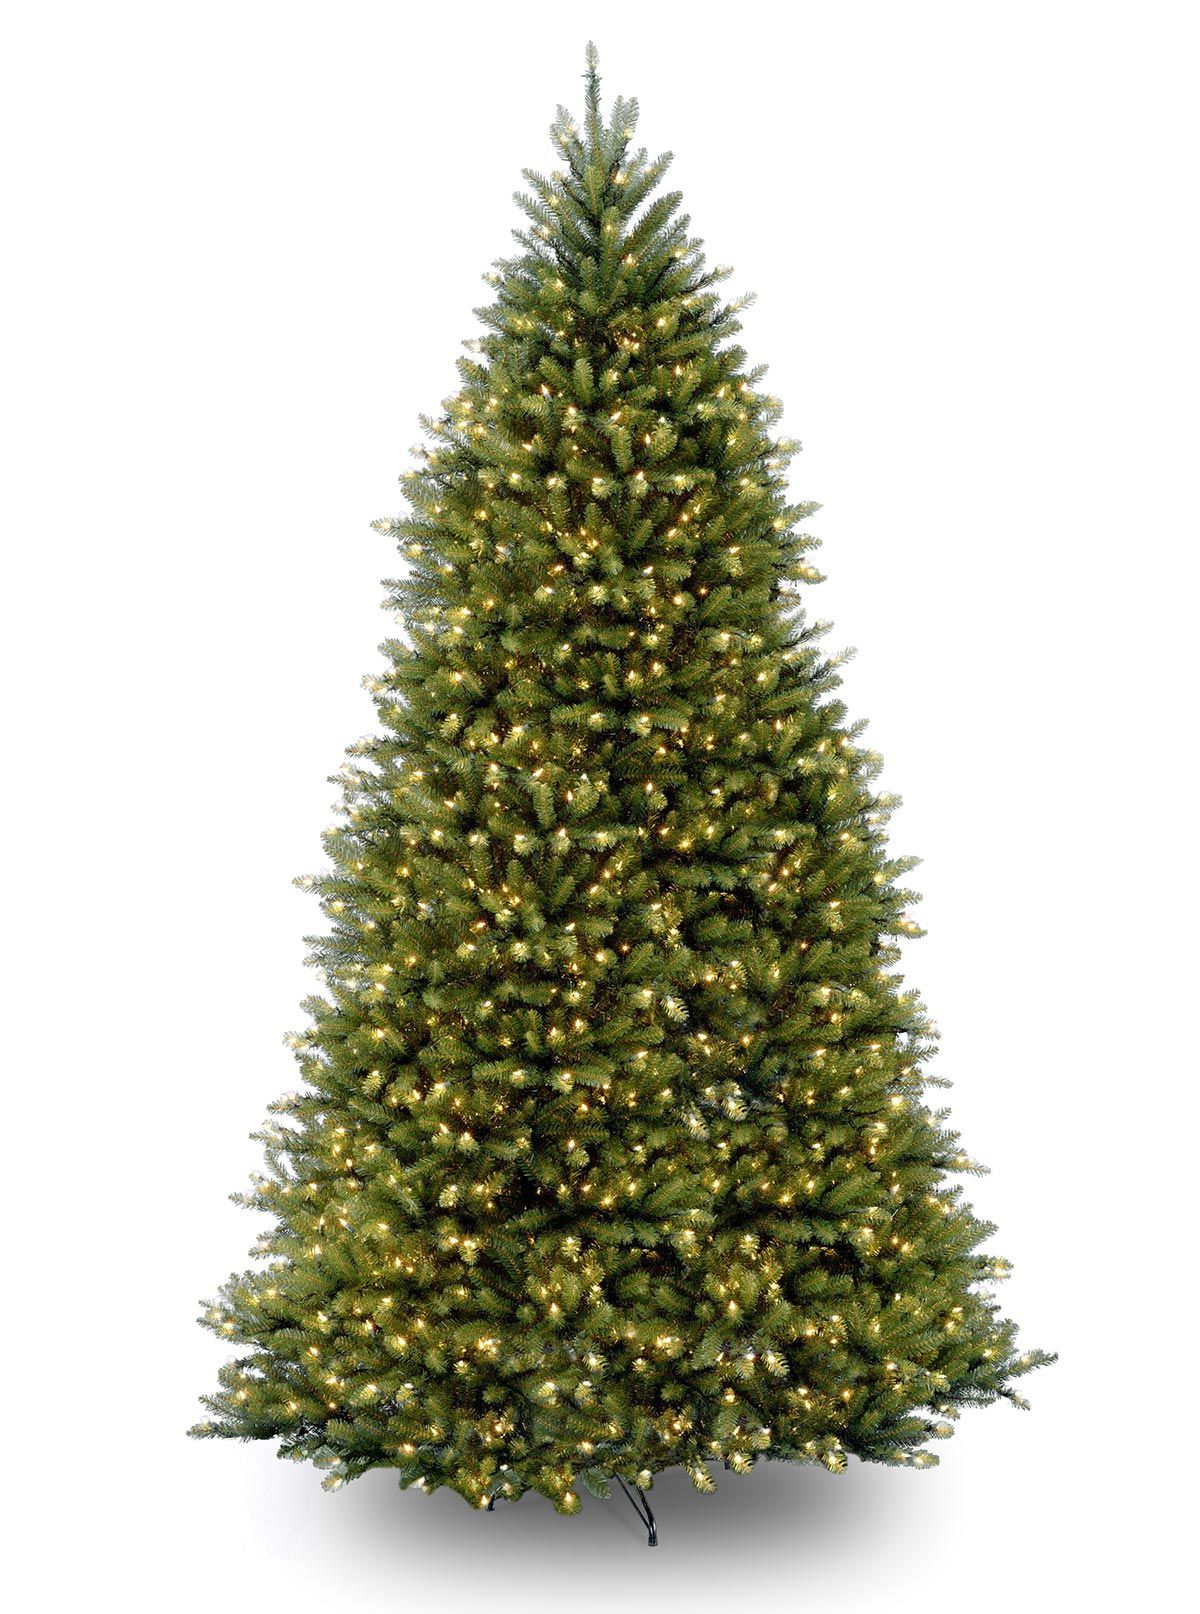 12ft Pre Lit Dunhill Fir Artificial Christmas Tree Fir Christmas Tree Pre Lit Christmas Tree Cool Christmas Trees